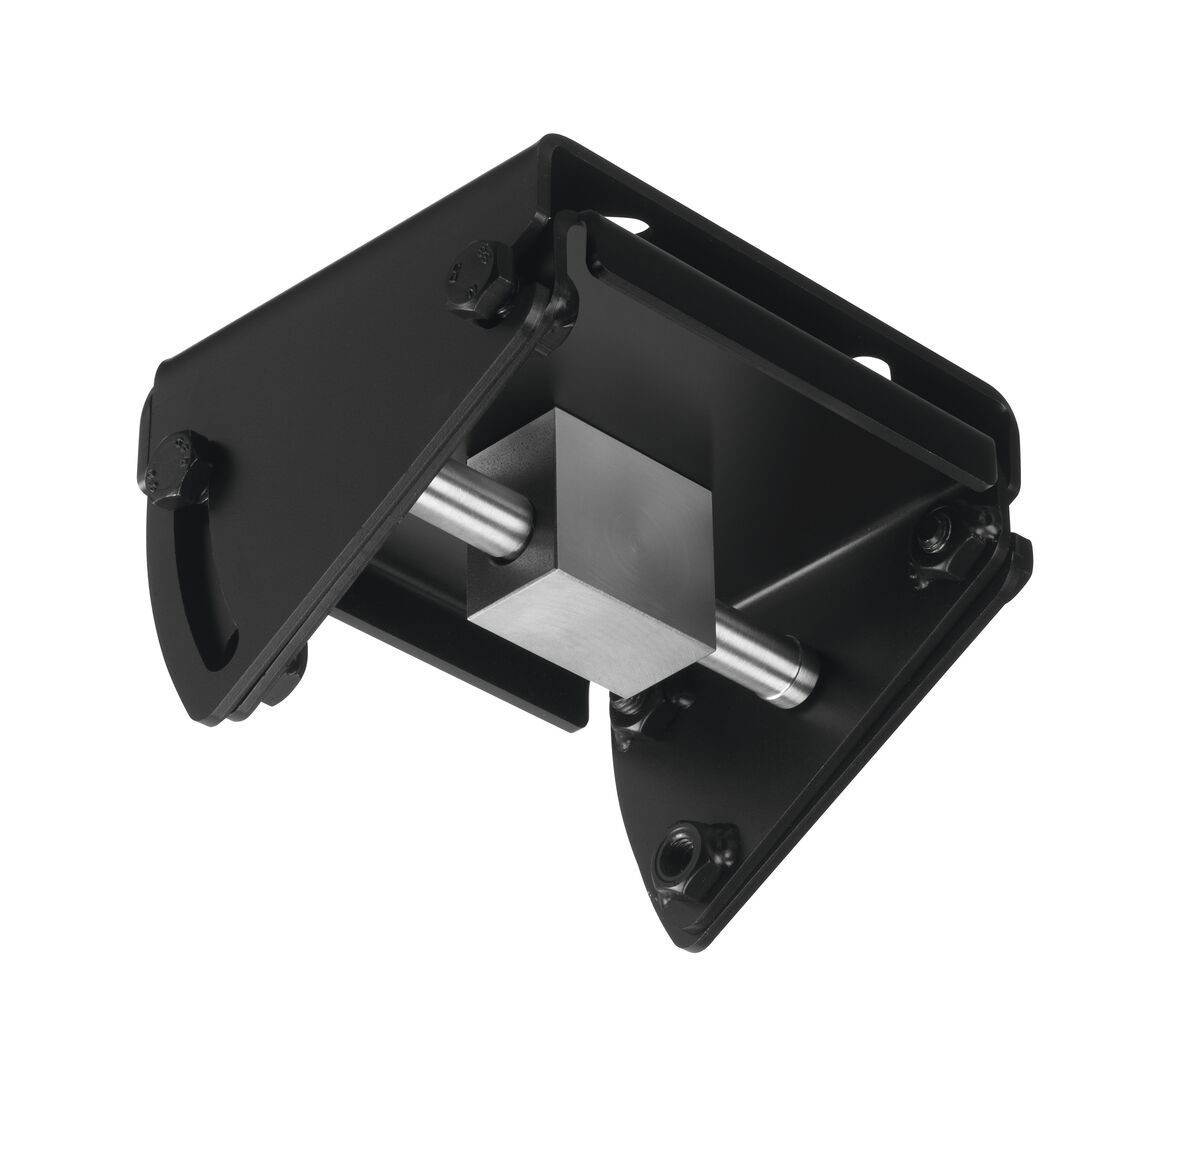 Vogel's PUC 1080 Placa giratoria e inclinable para techo - Product